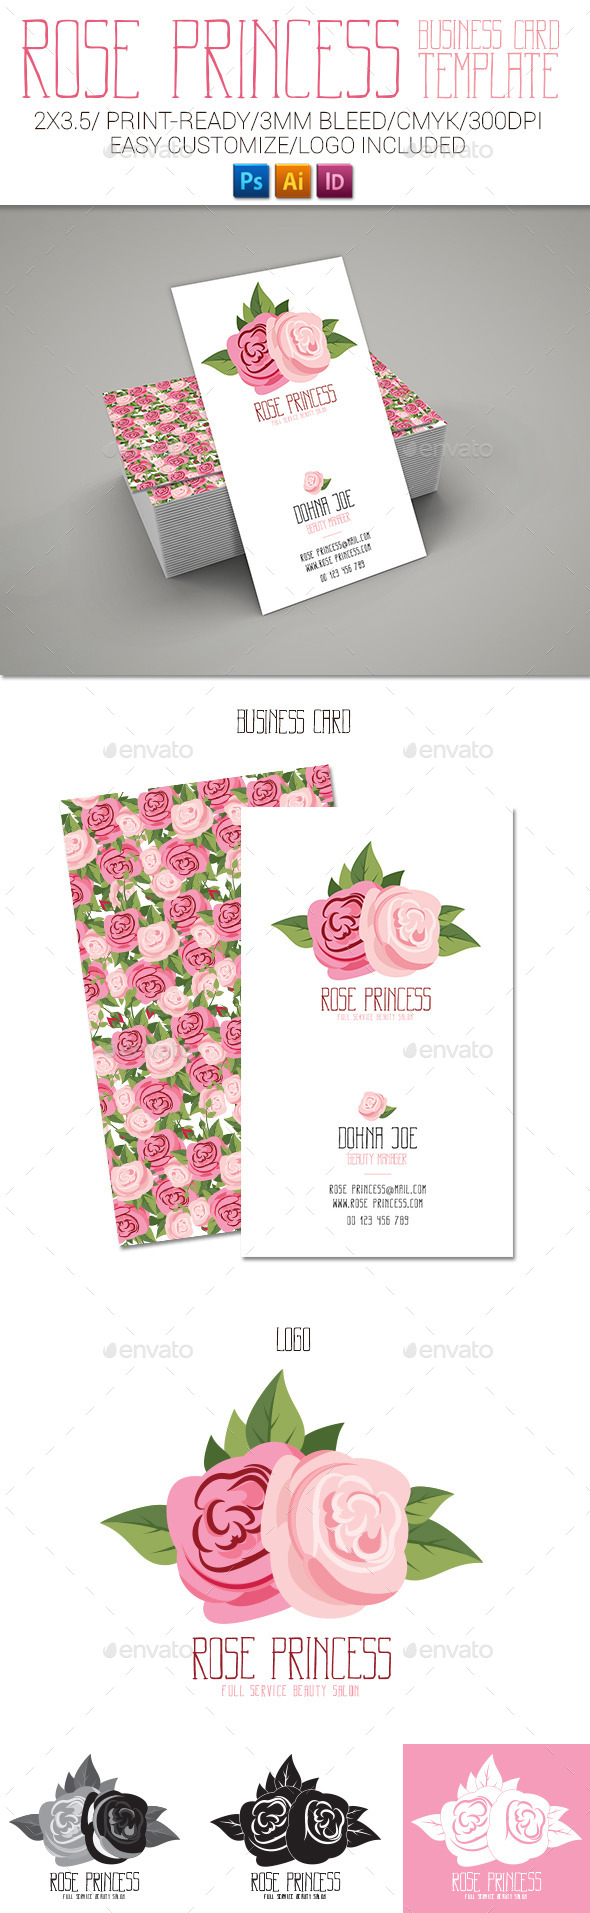 GraphicRiver Rose Princess Business Card 11854898